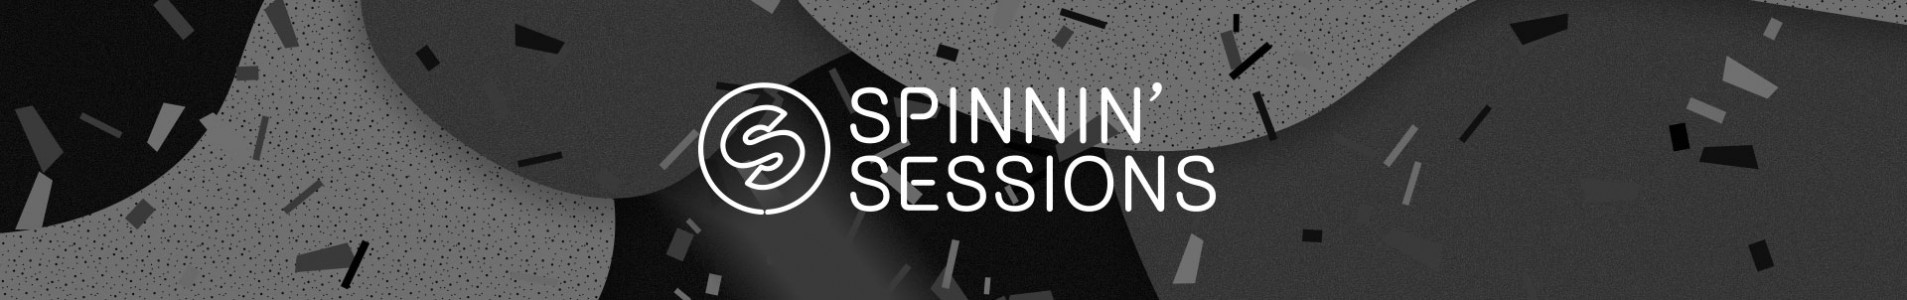 Spinnin' Sessions brings first 'Best Of 2017' mix